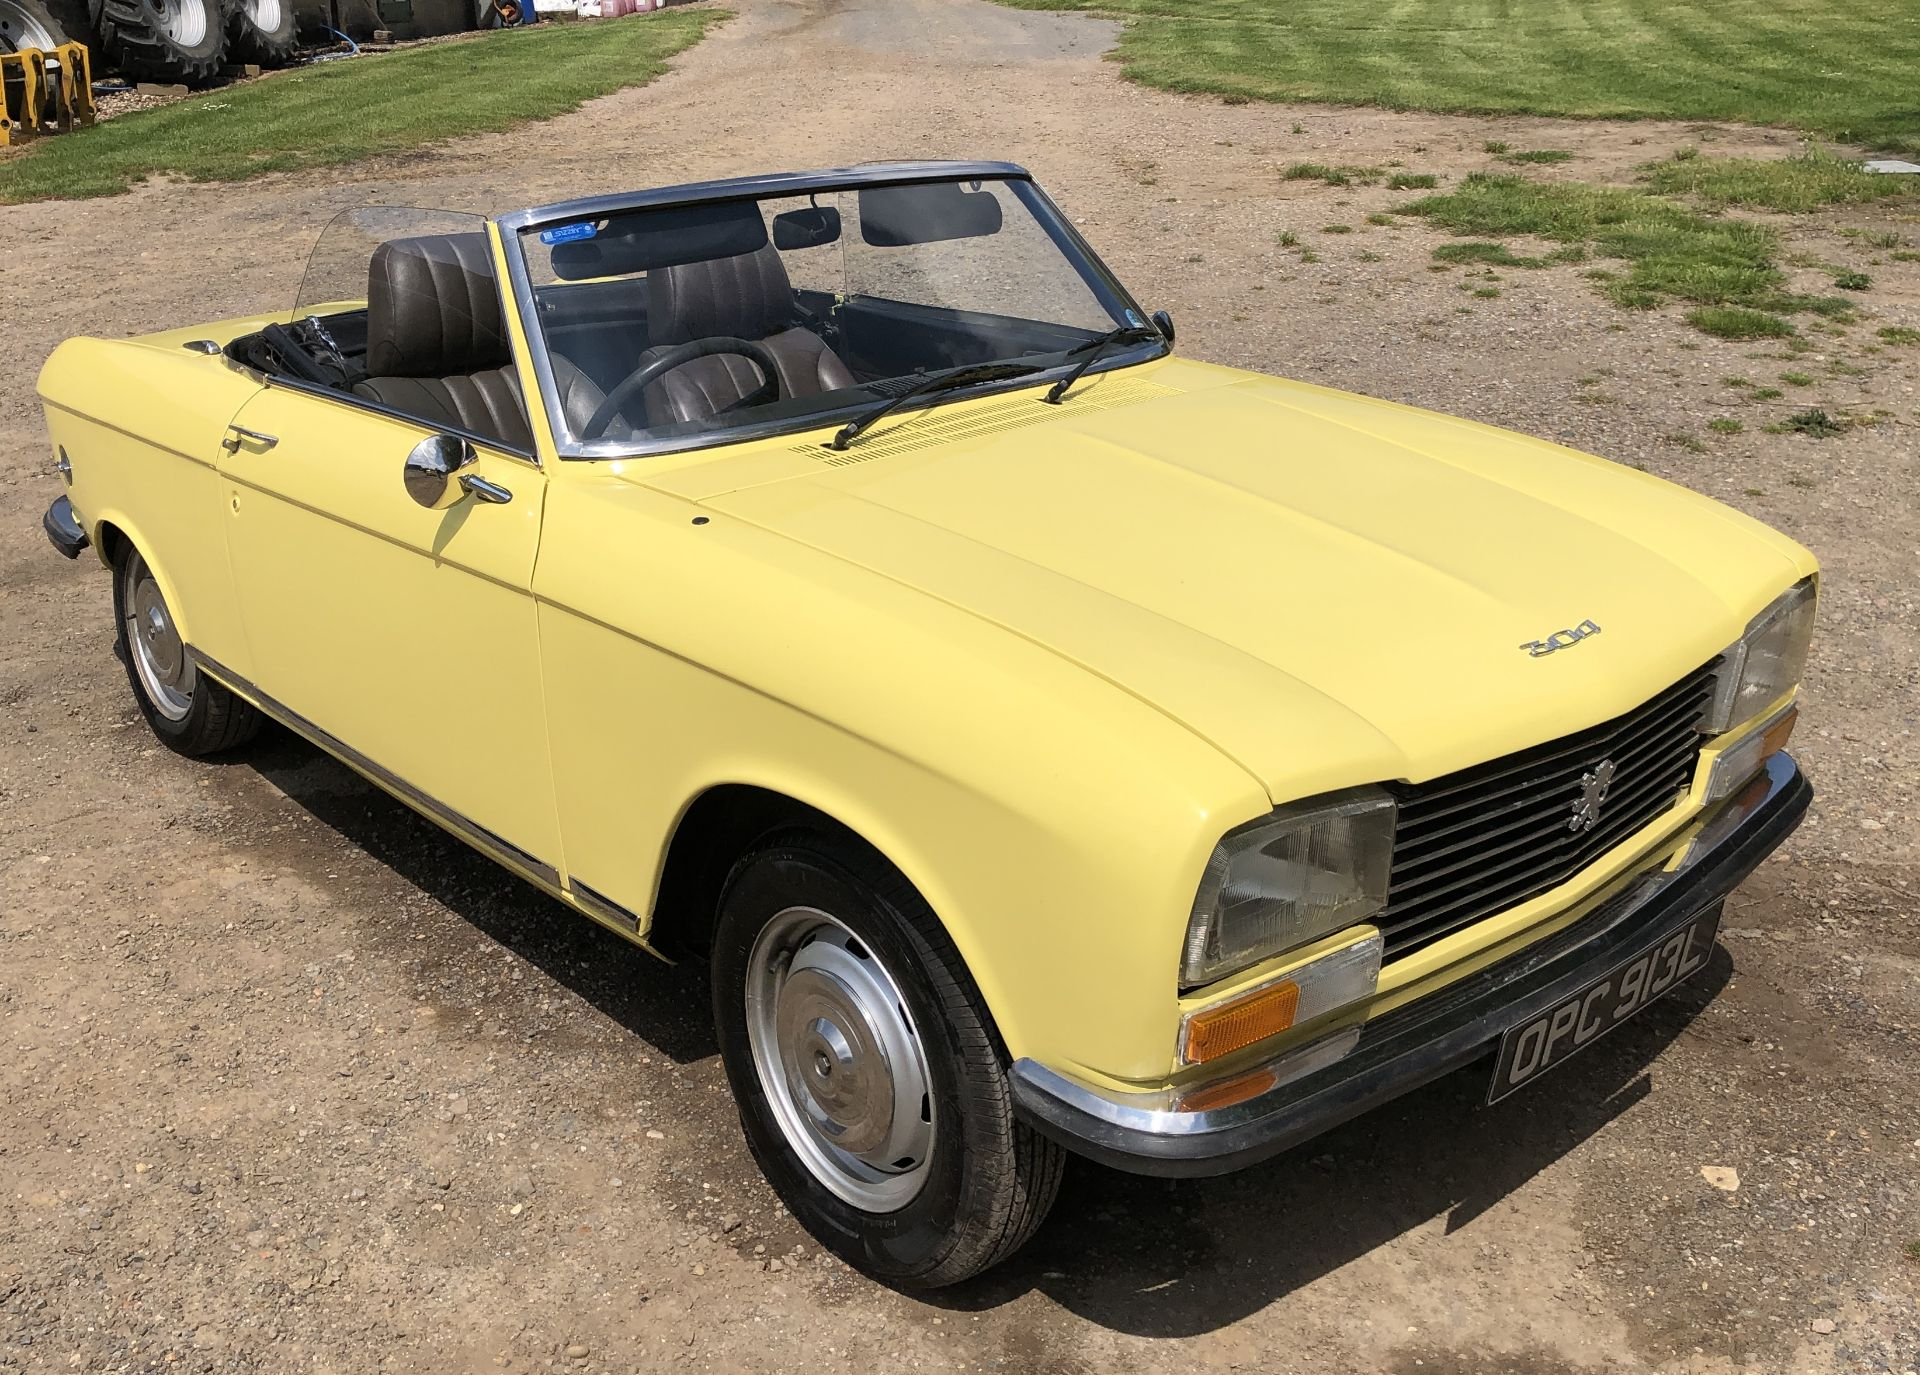 Rare Right Hand Drive Peugeot 304 Convertible, Registration OPC 913L, First Registered 2nd - Image 20 of 48